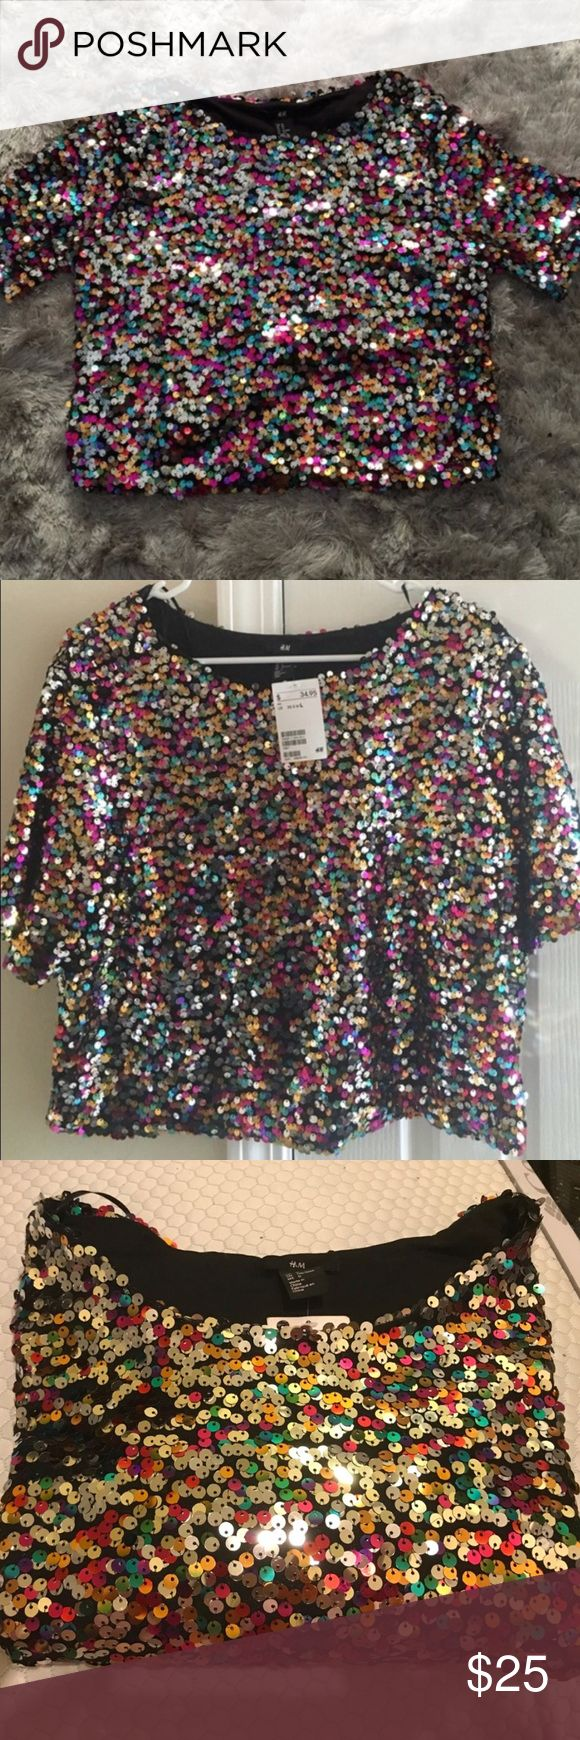 Sequin crop top Beautiful multi colored crop top. Never worn, brand new with tags H&M Tops Crop Tops